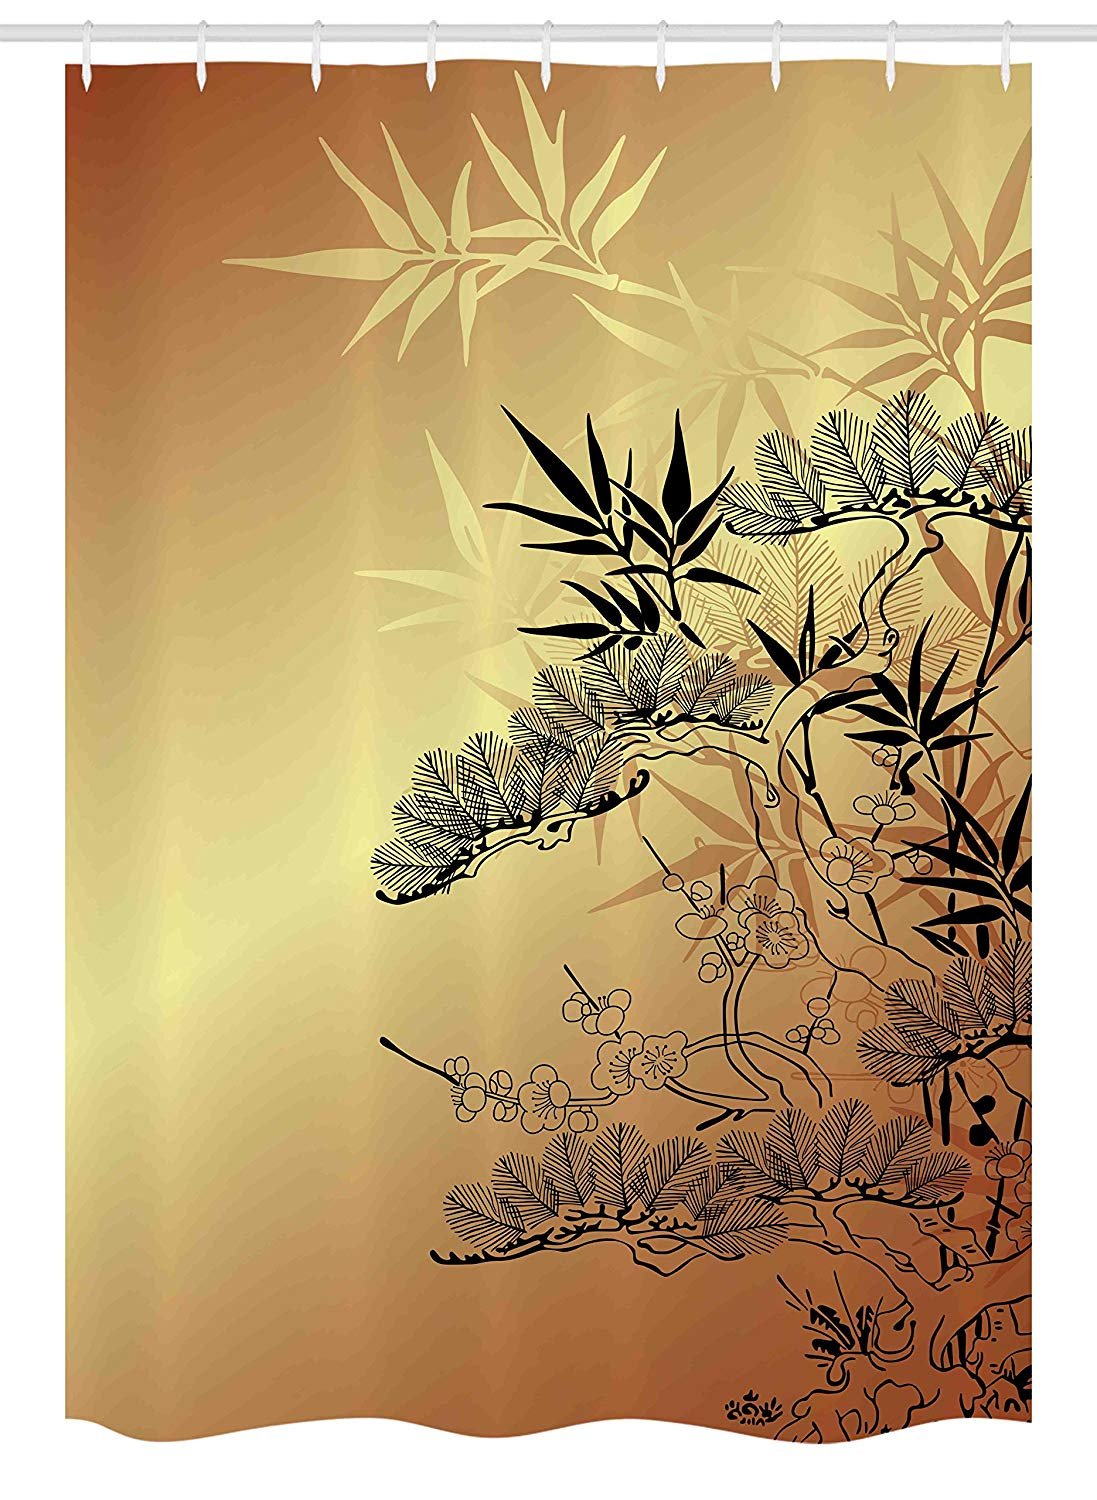 "Ambesonne Japanese Stall Shower Curtain, Branches and Bamboo Motifs with Showy Fragrant Leaves Nature Illustration, Fabric Bathroom Decor Set with Hooks, 54"" X 78"", Sepia Black"